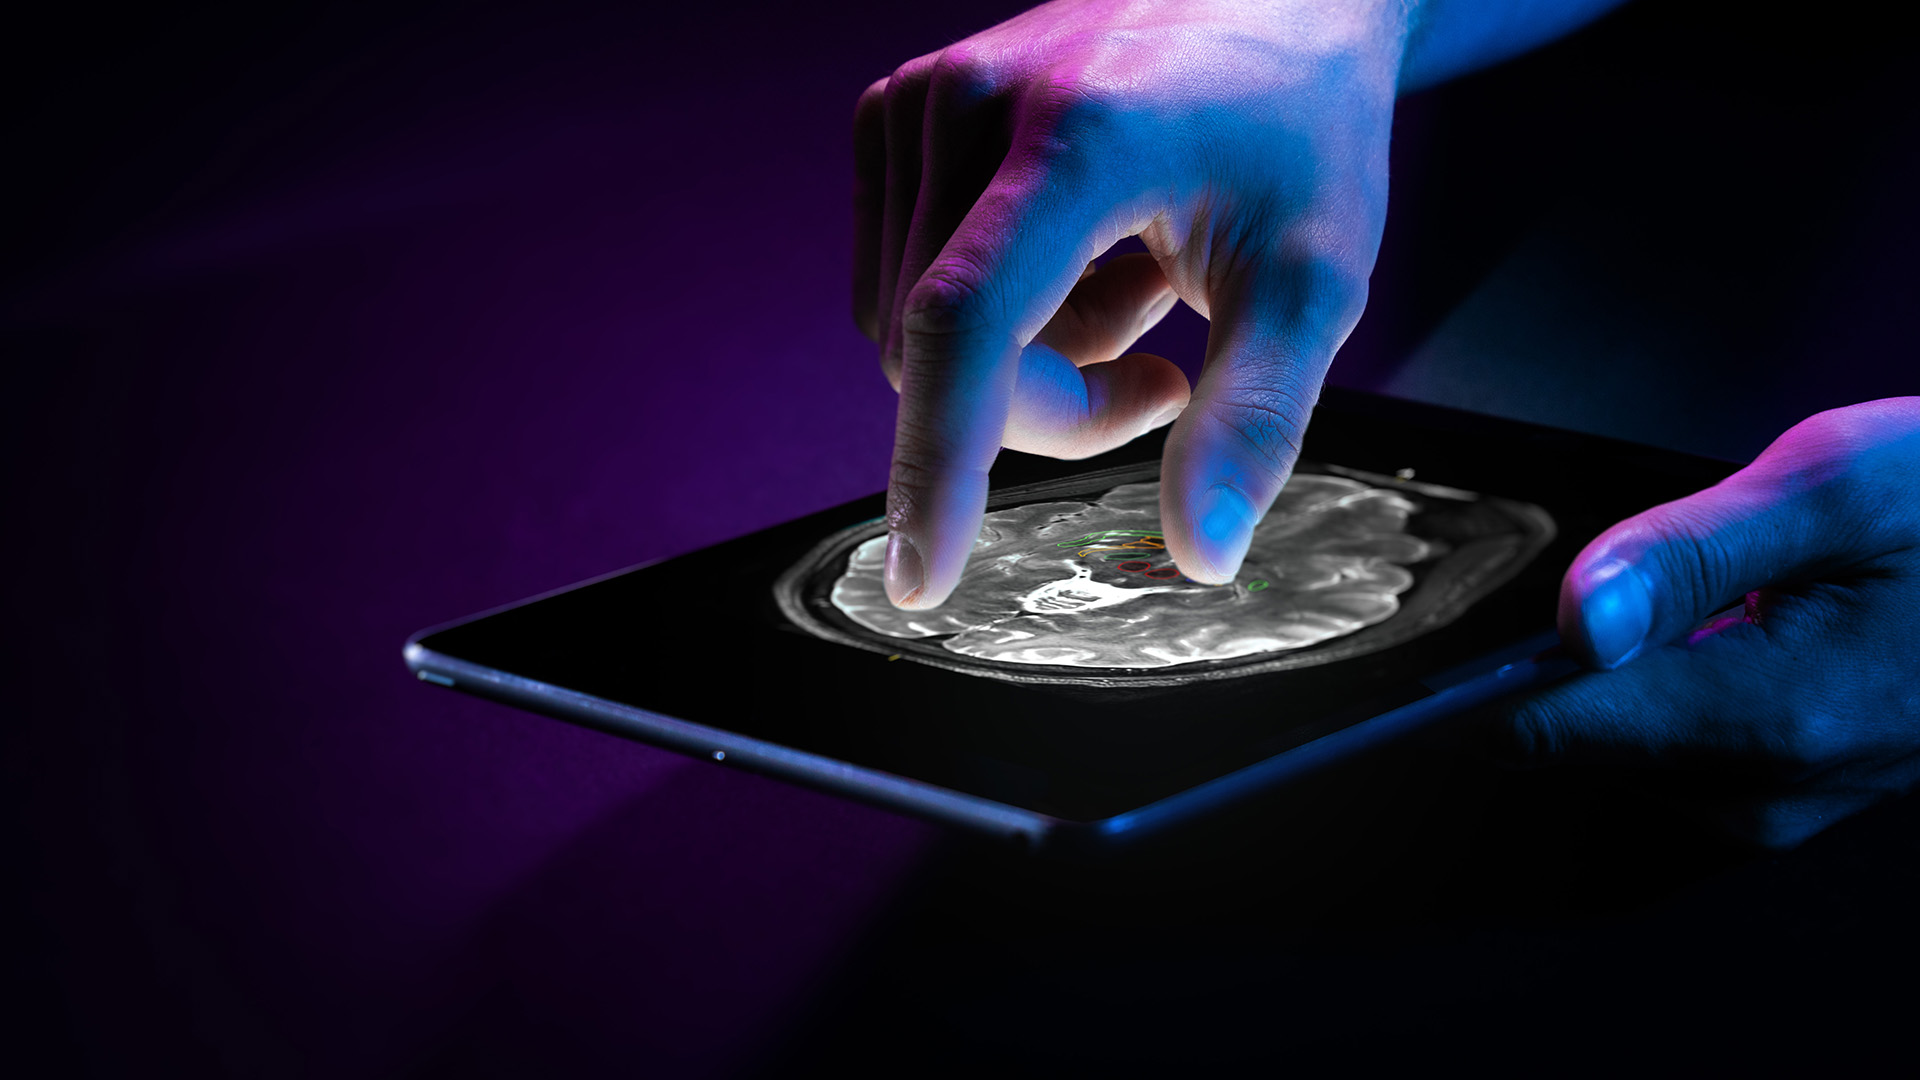 A hand holds a tablet while the other manipulates a digital patient scan on its touch screen